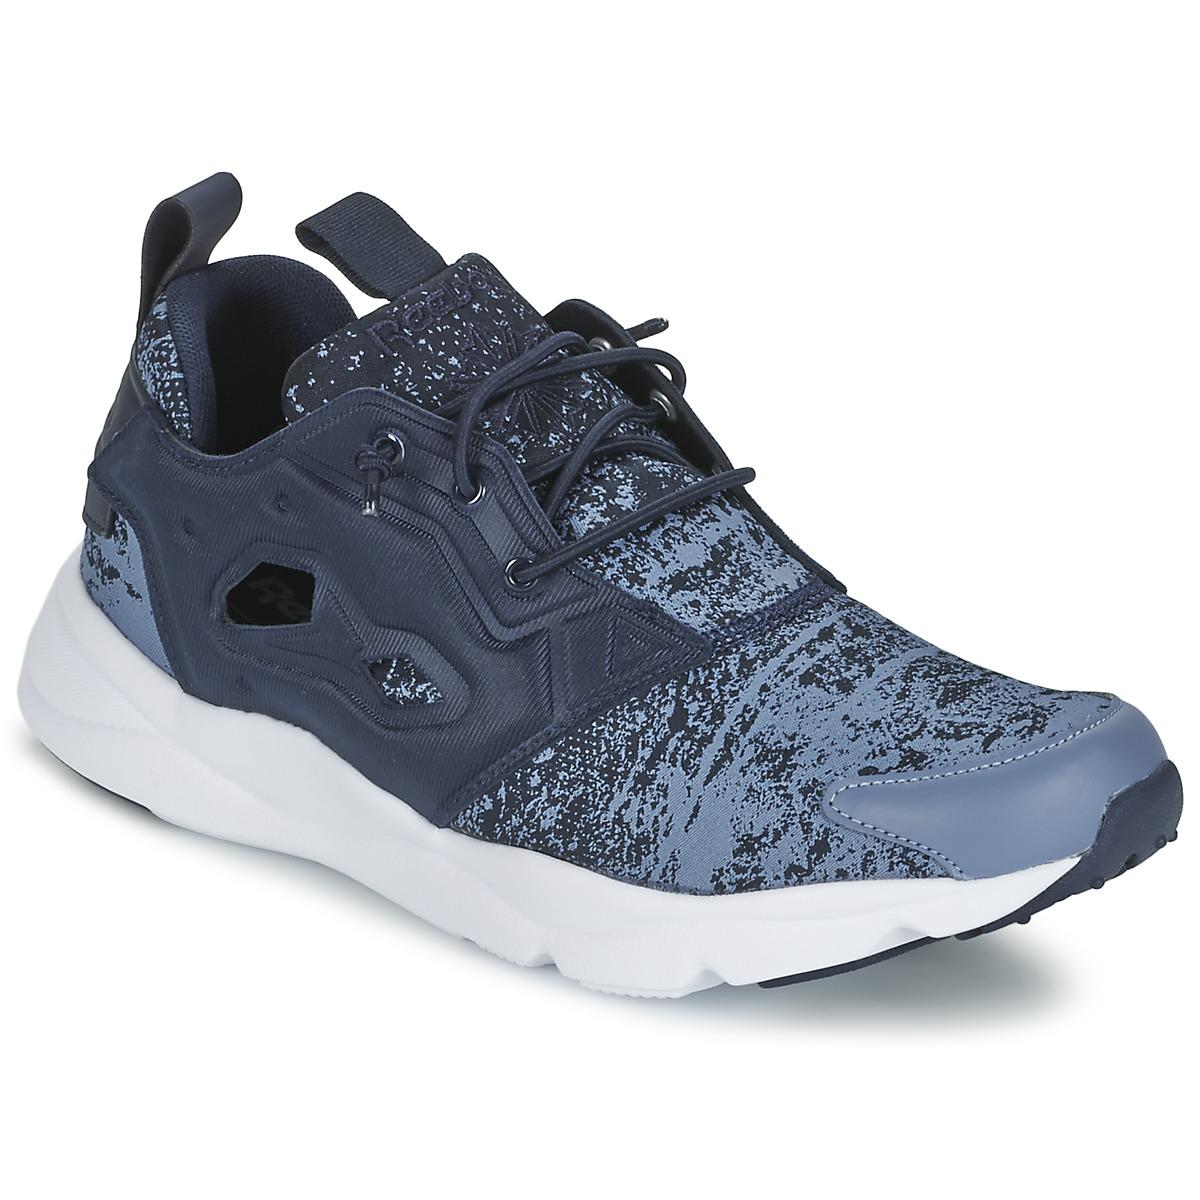 9d26e9f56 Reebok Furylite Jf Shoes (trainers) in Blue for Men - Lyst